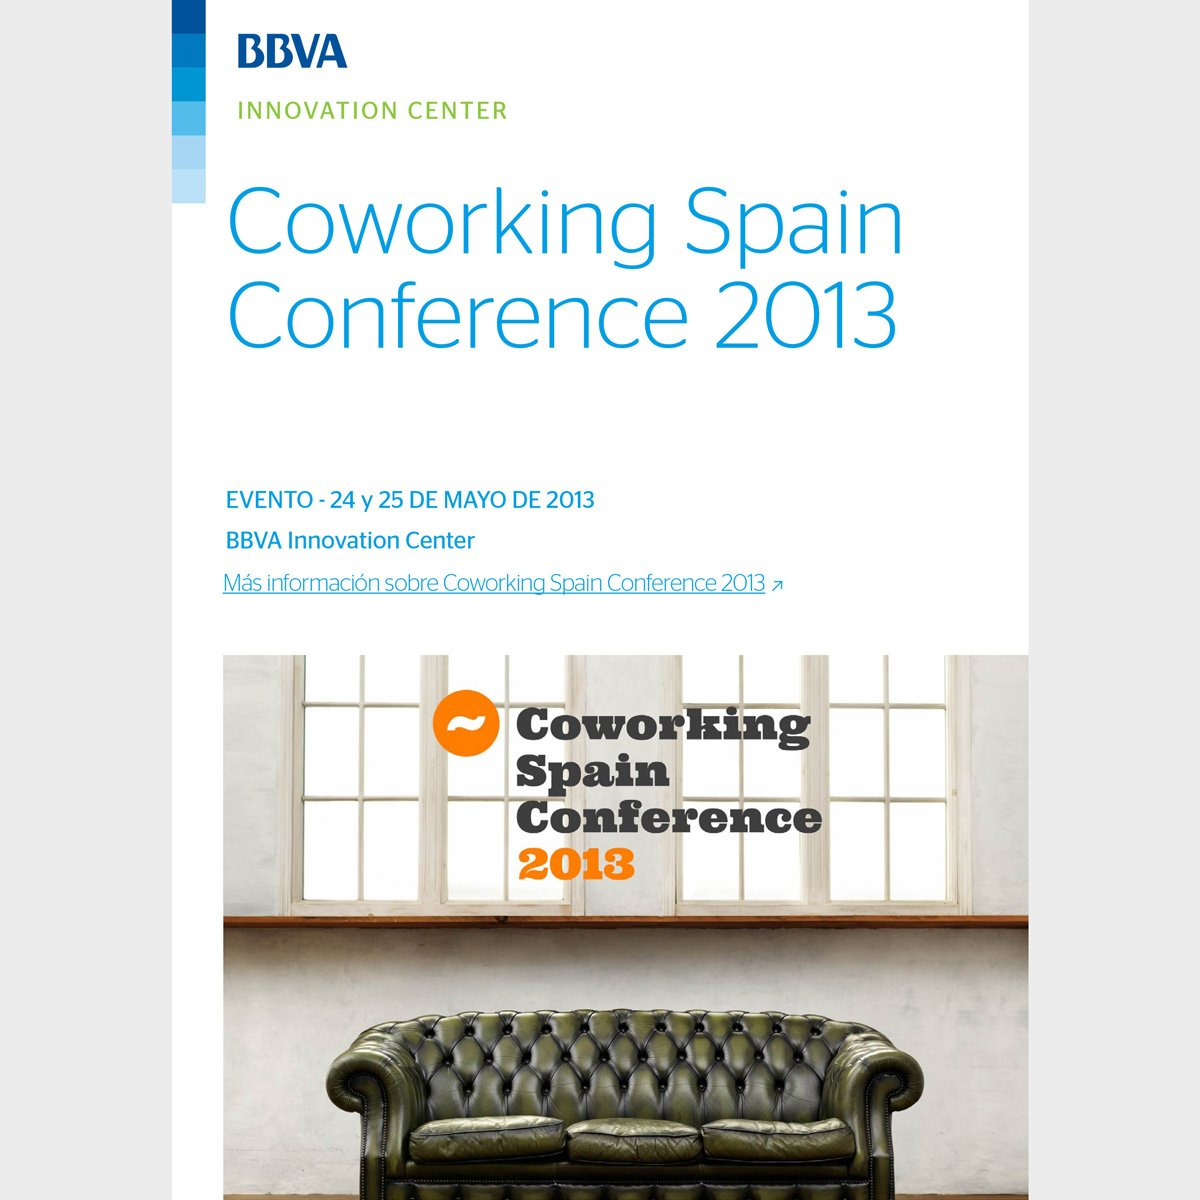 Coworking Spain Conference 2013